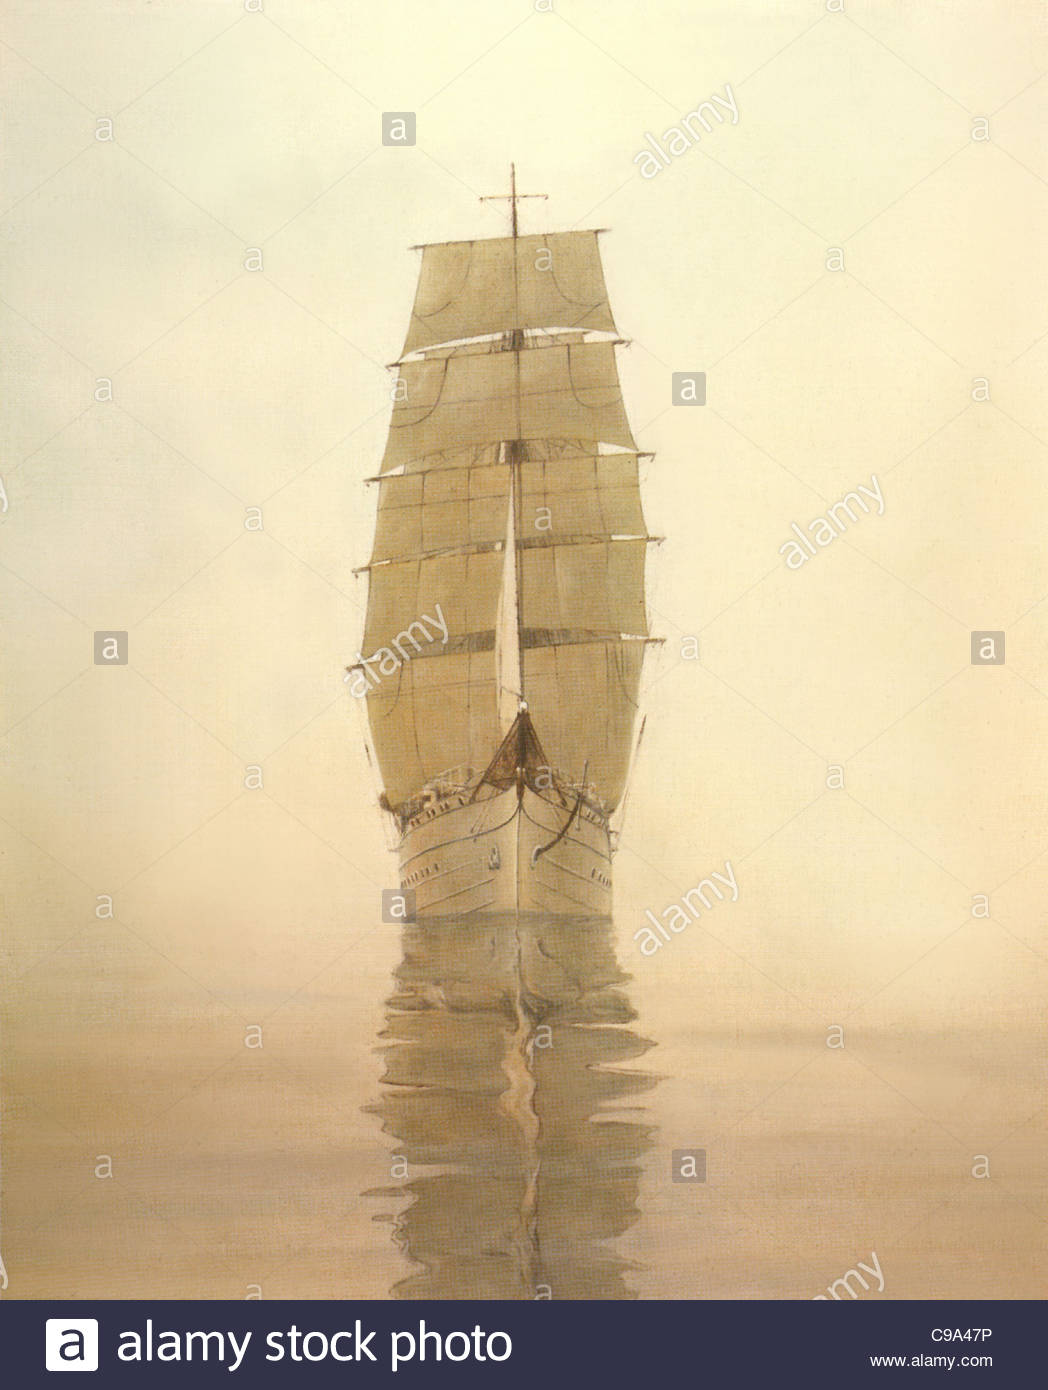 Sail training ship Gorch Foresail (I) - Stock Image